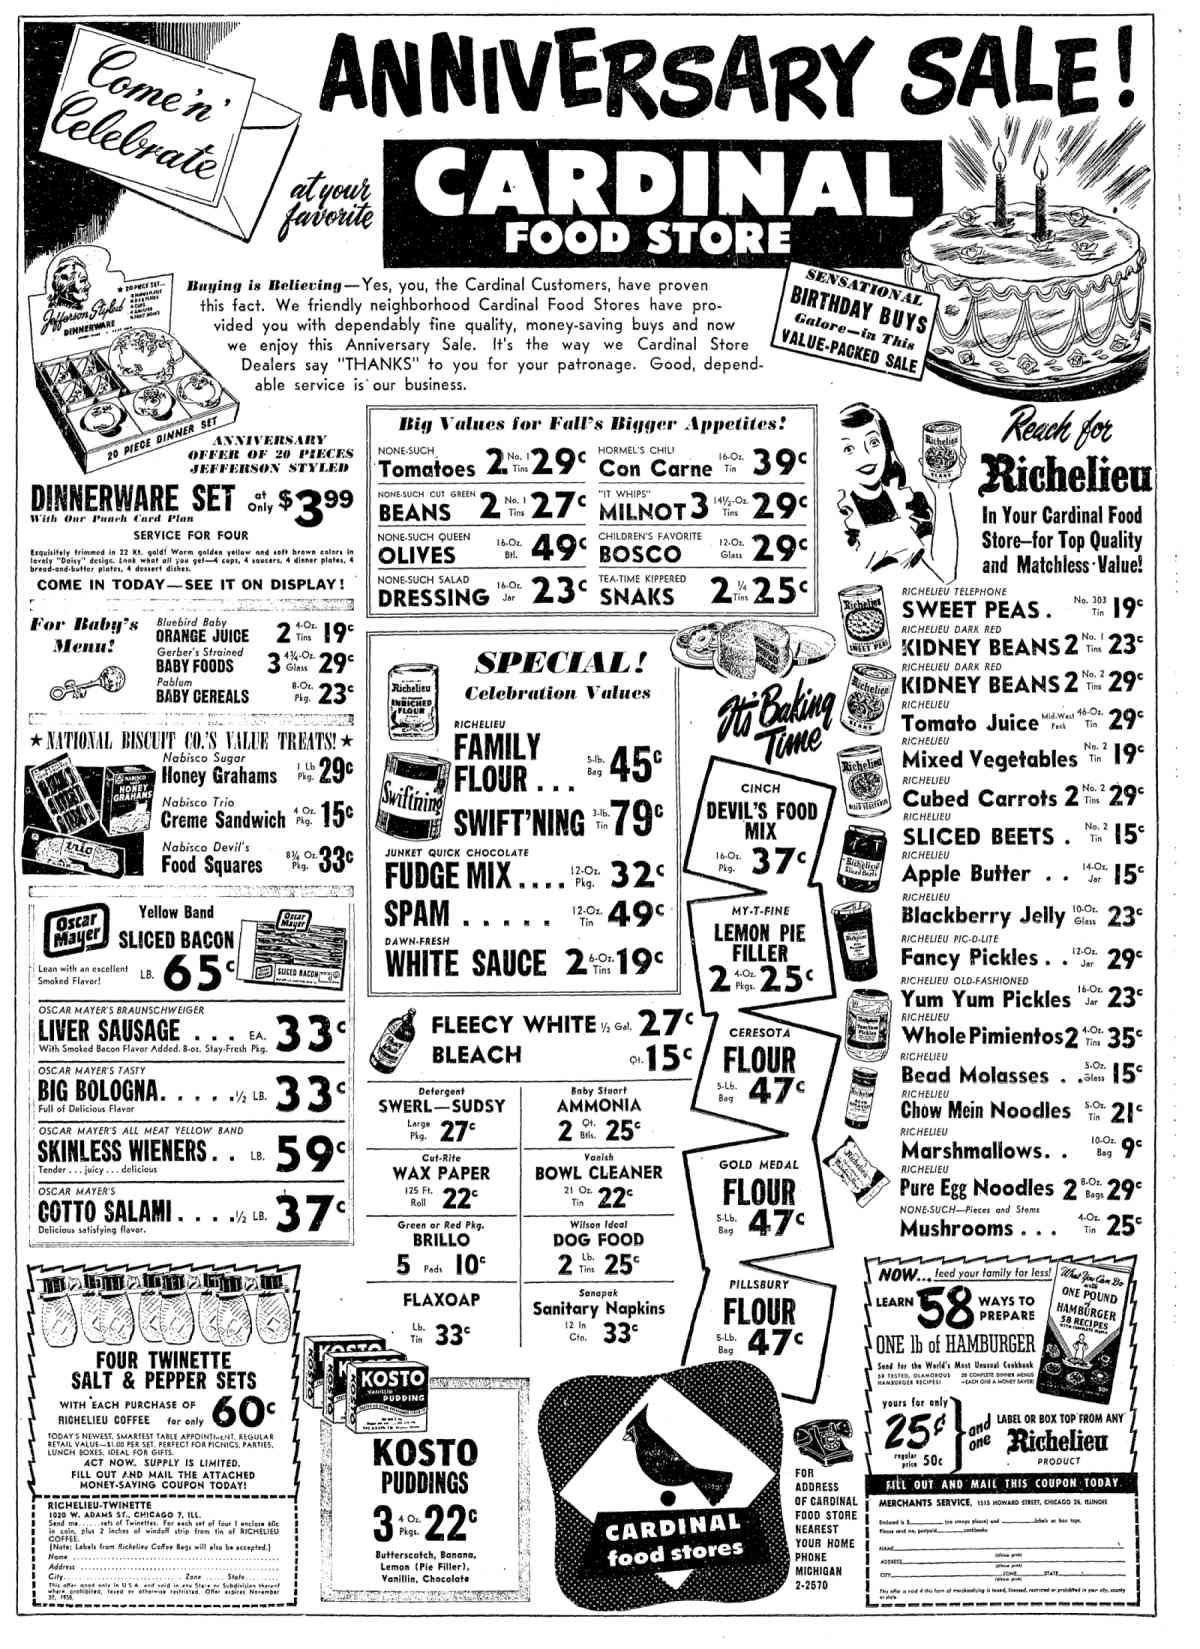 September 8, 1950 - RECORD MEAT SUPPLY, PRICE CUTS FORECAST | Chicago Tribune Archive